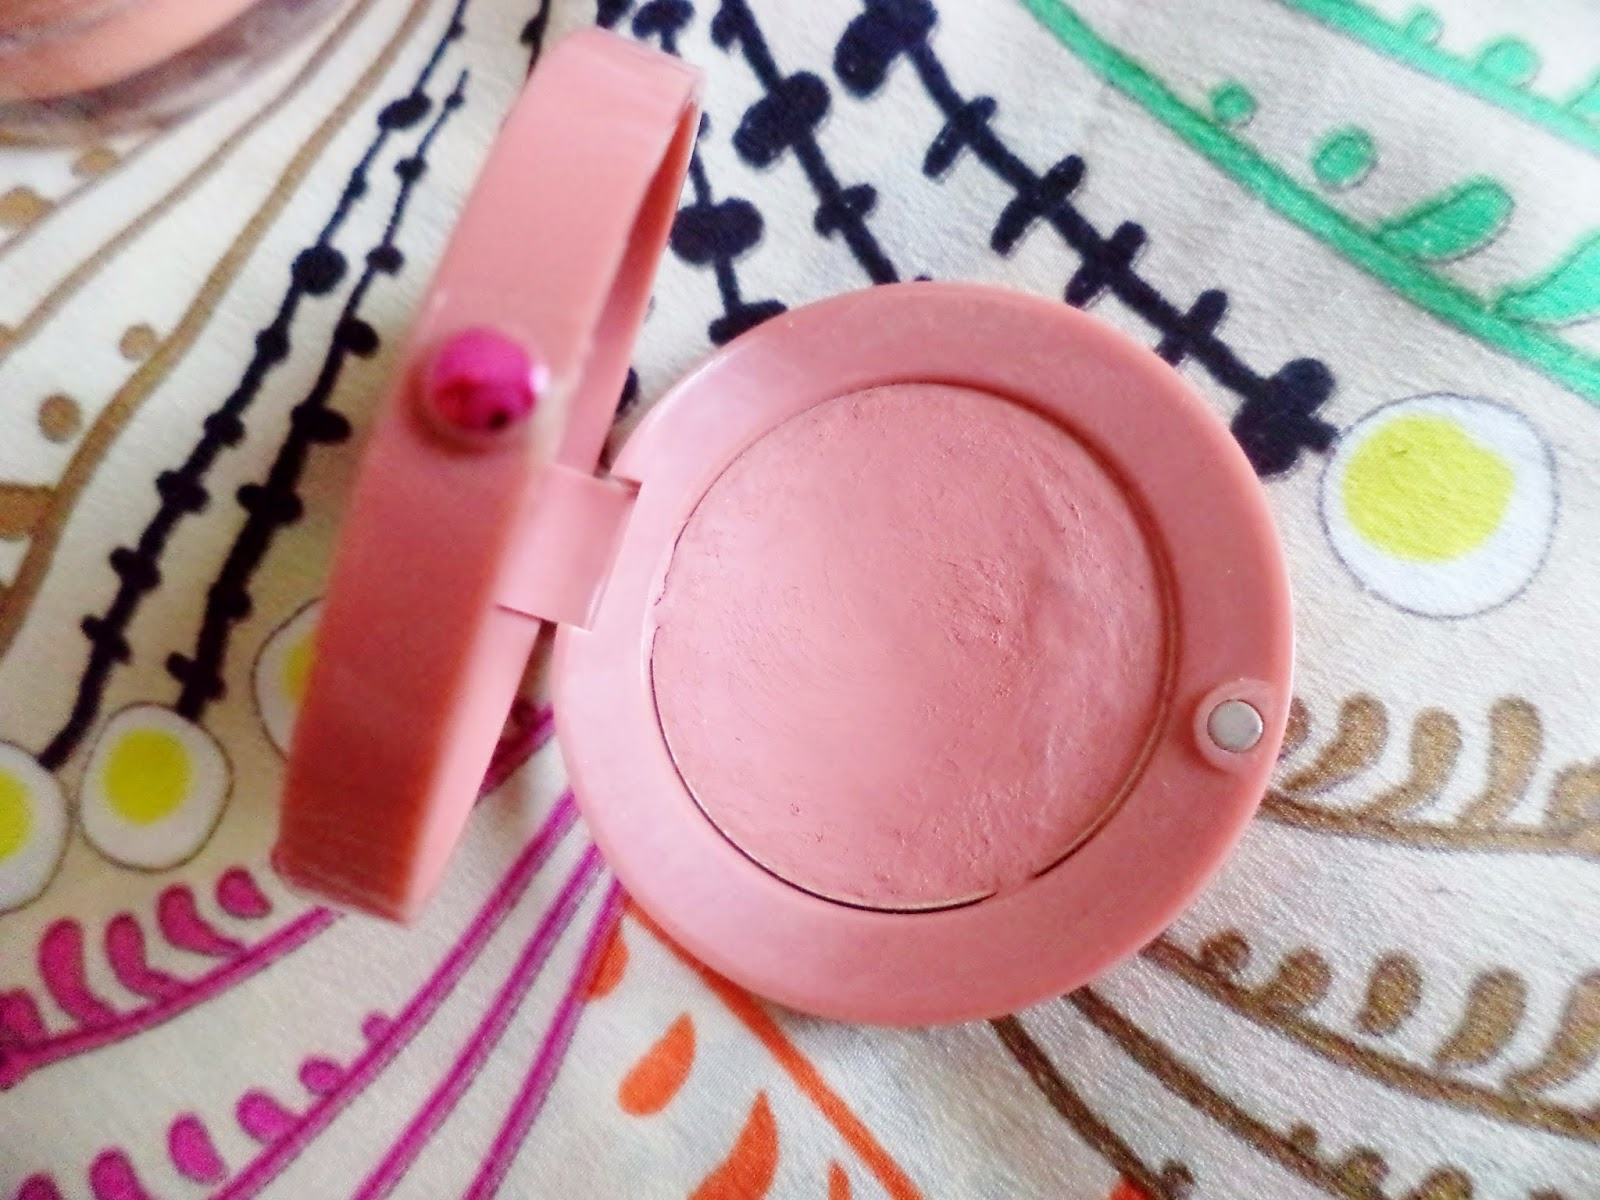 bourjois cream blushes